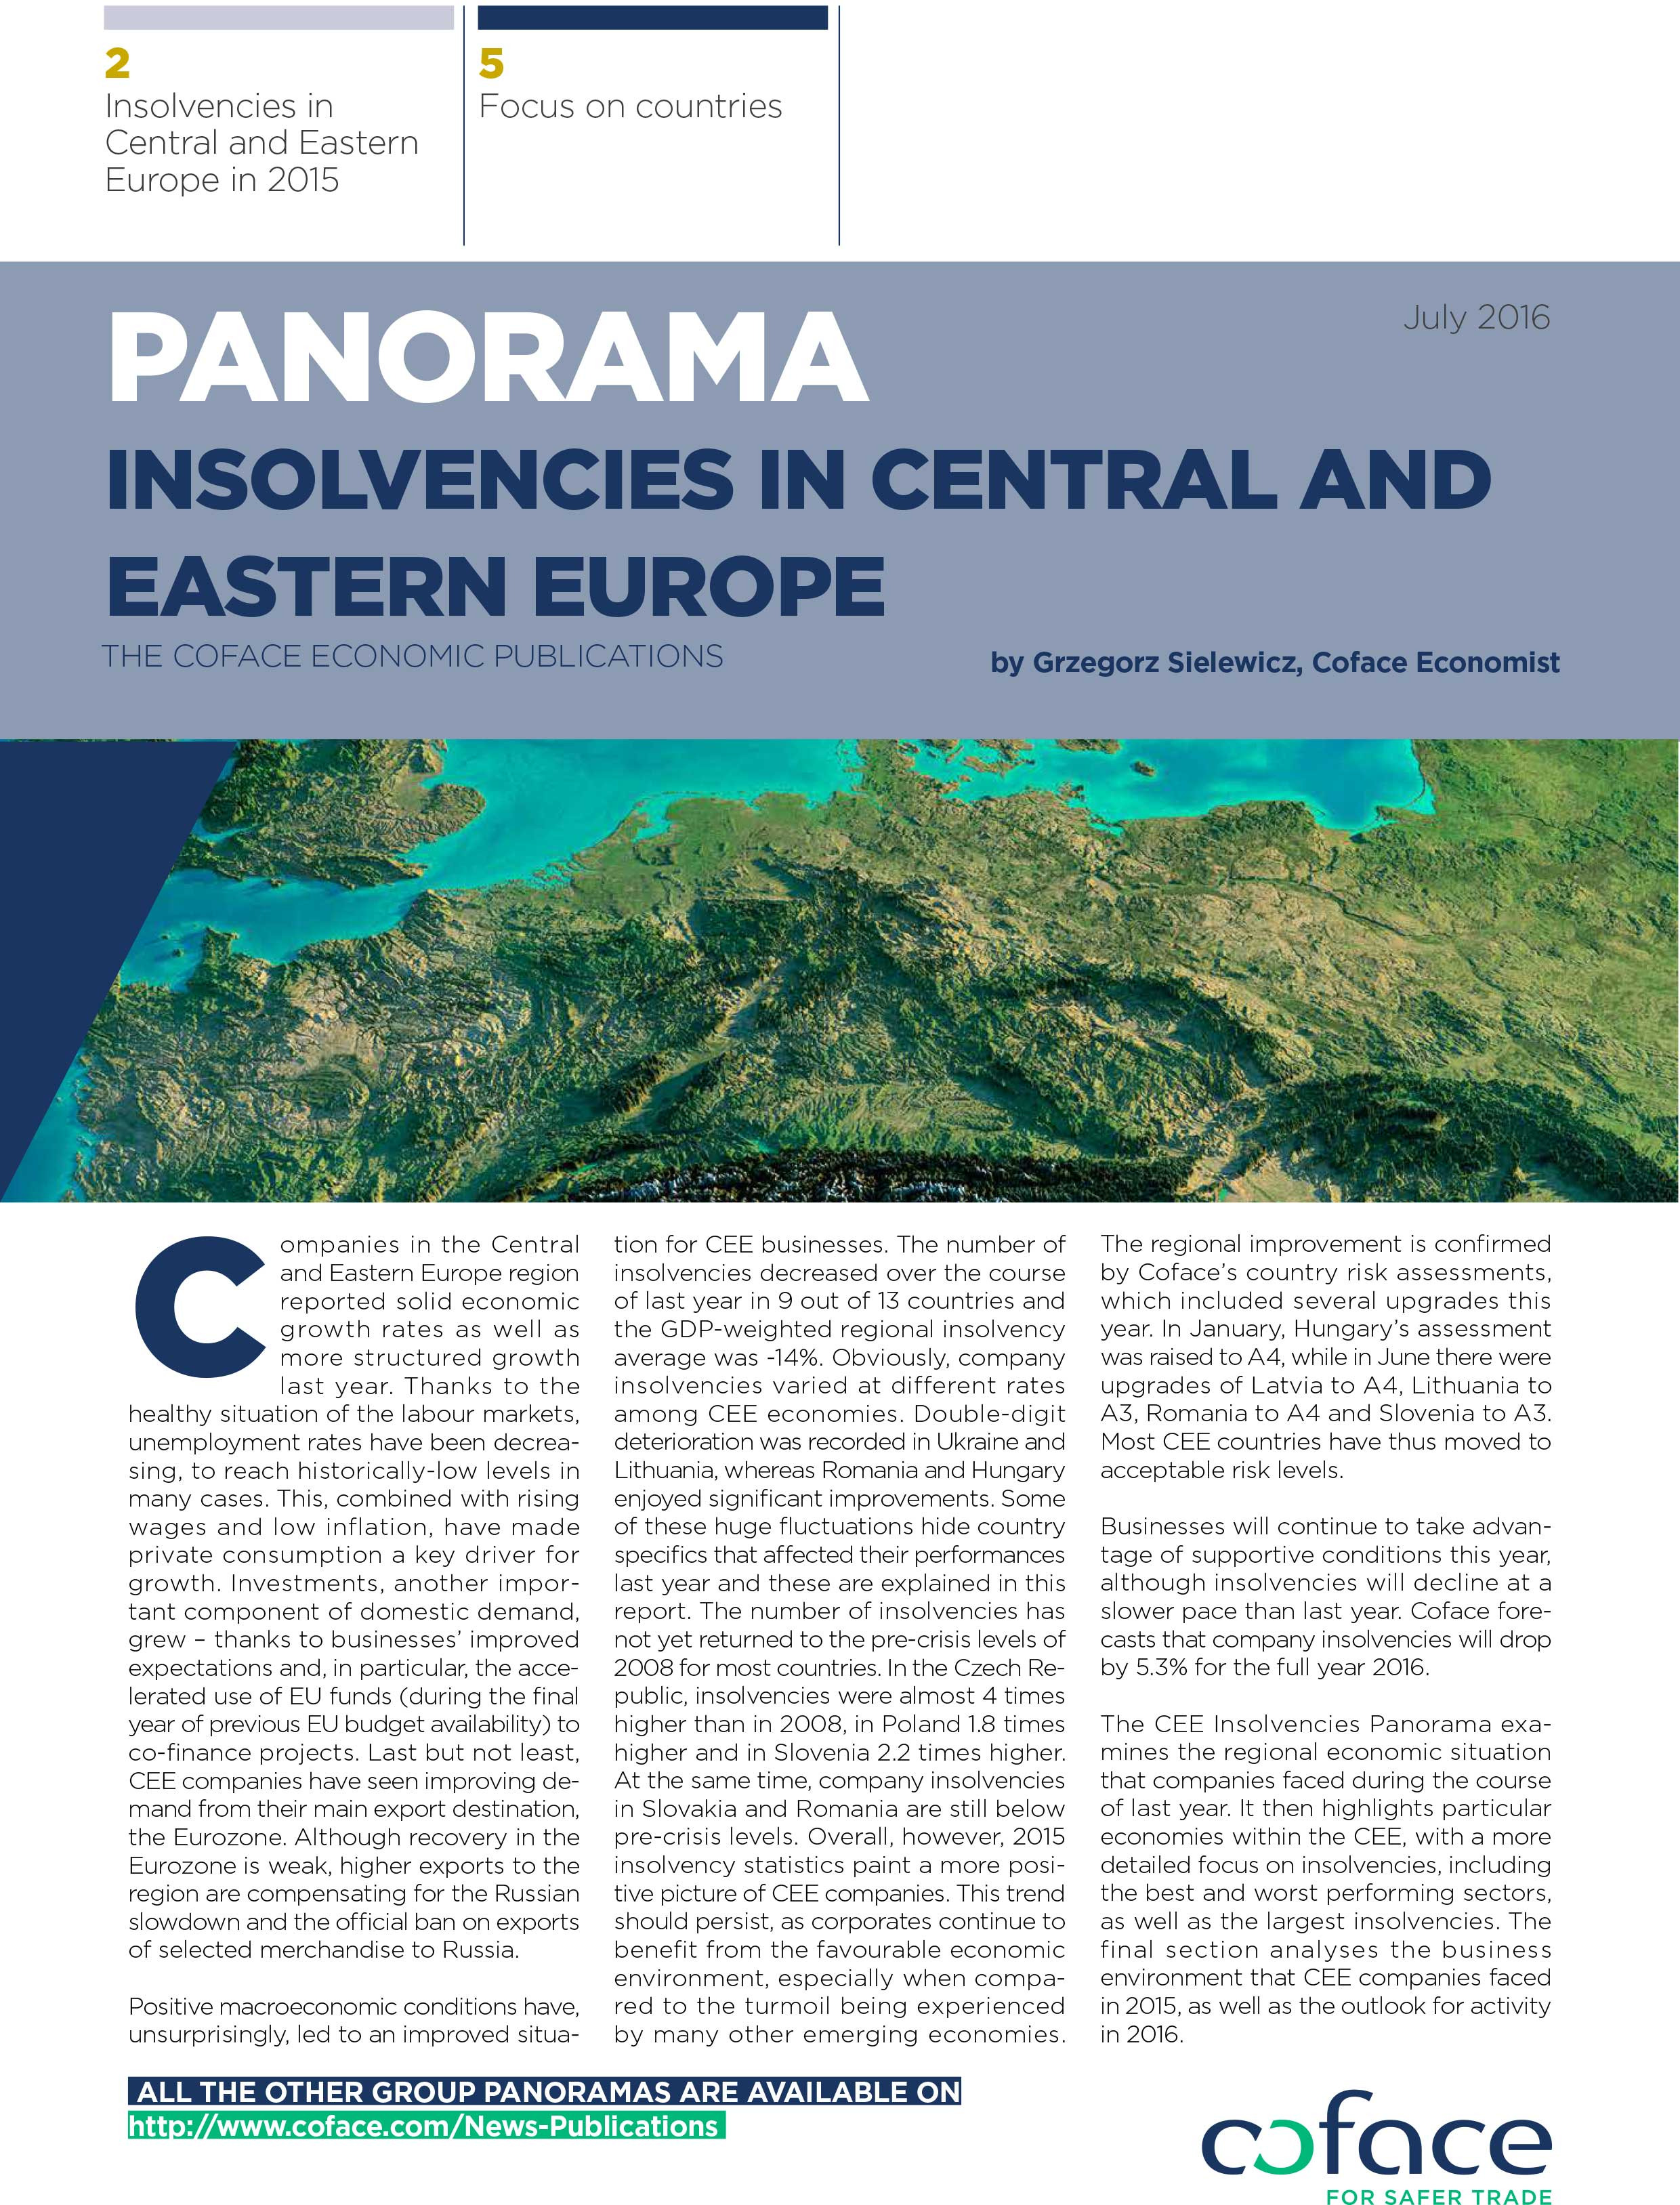 Panorama Insolvencies in Central and Eastern Europe